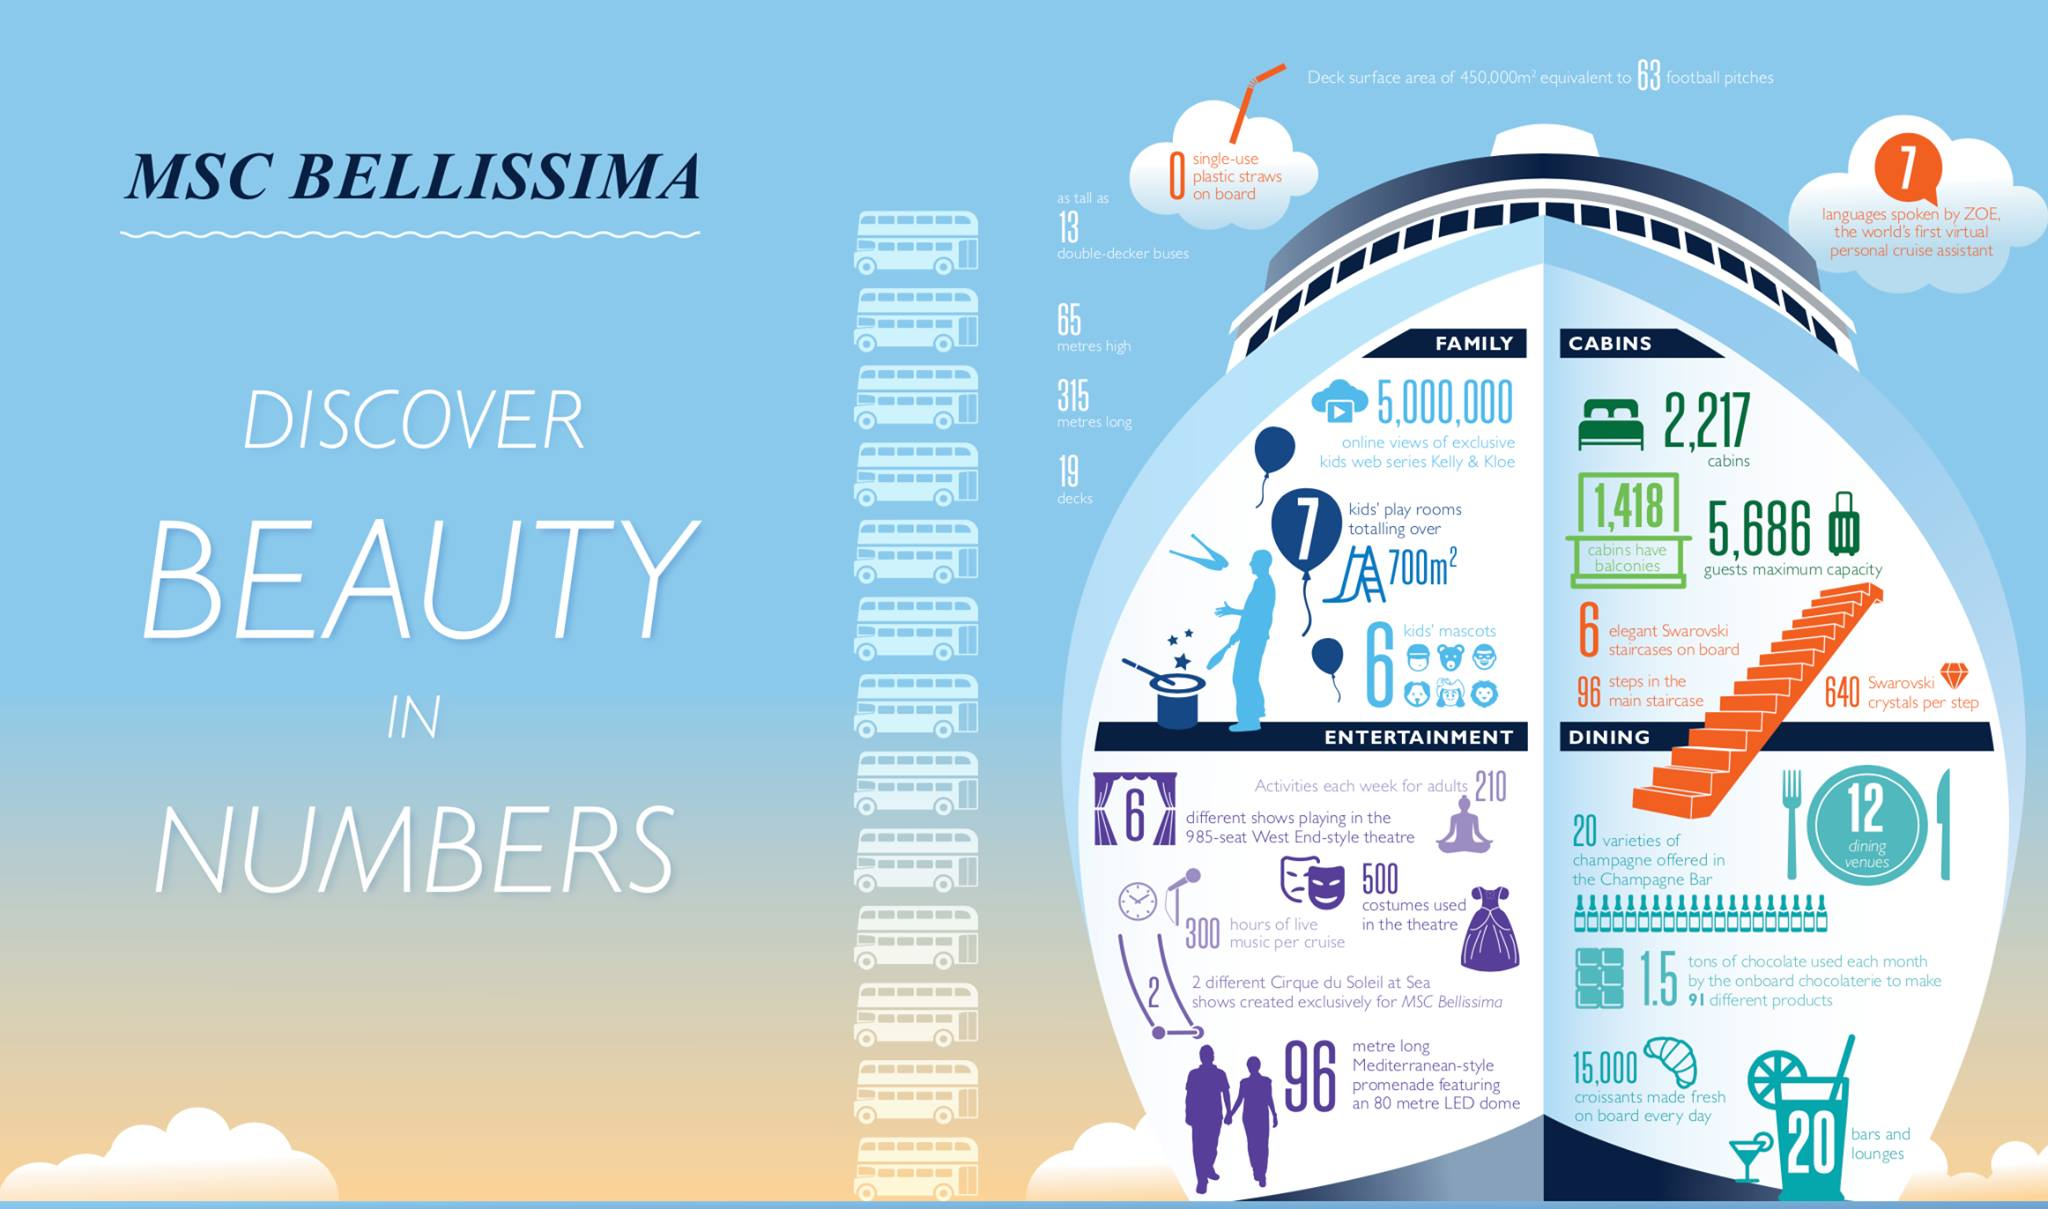 Bellissima in numbers